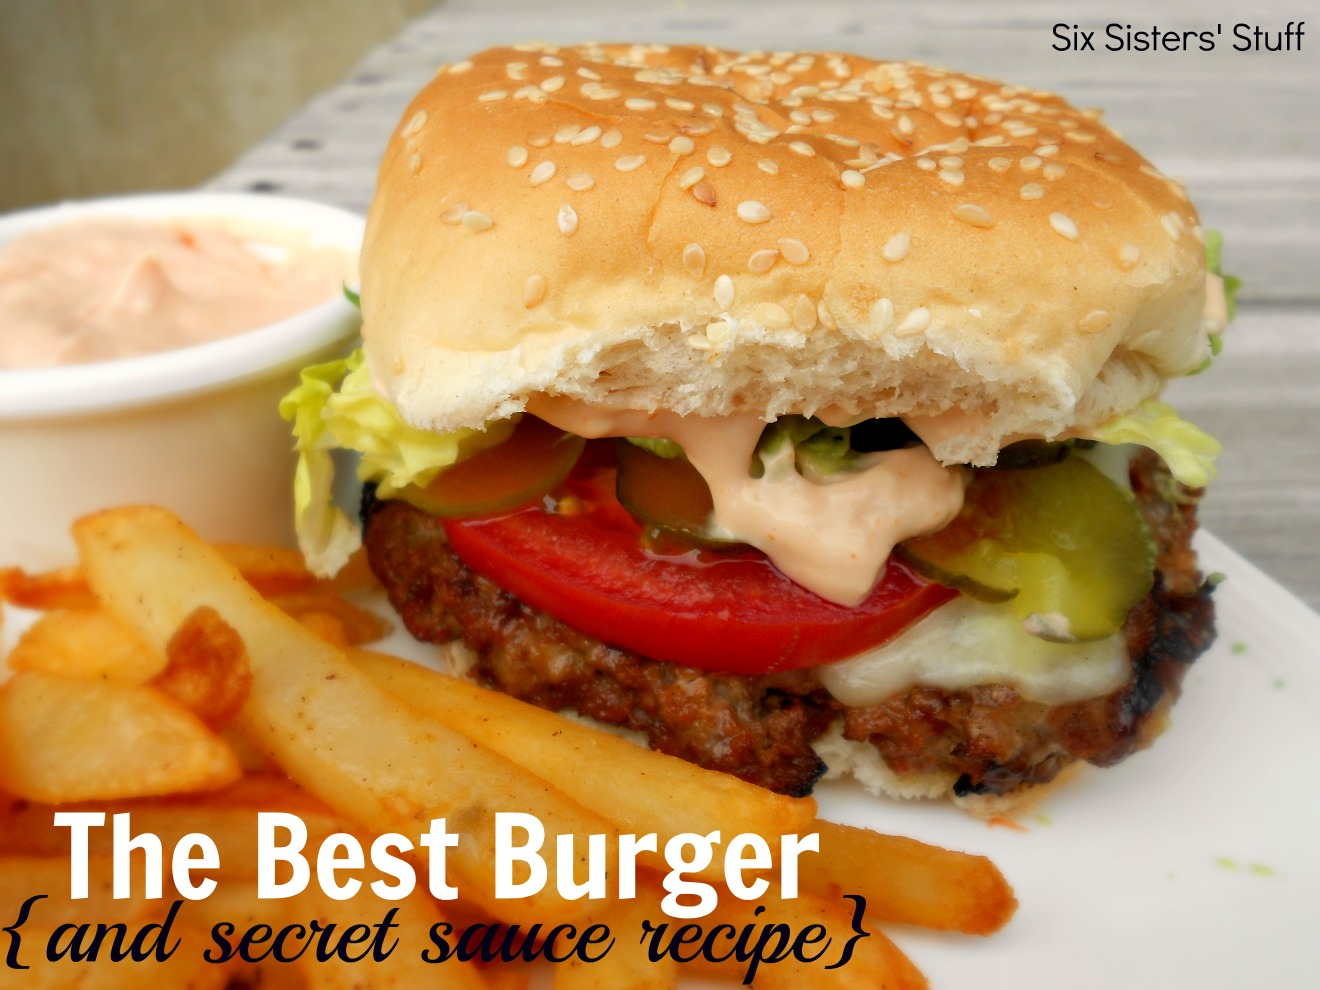 The+Best+Burger+and+secret+sauce.jpg